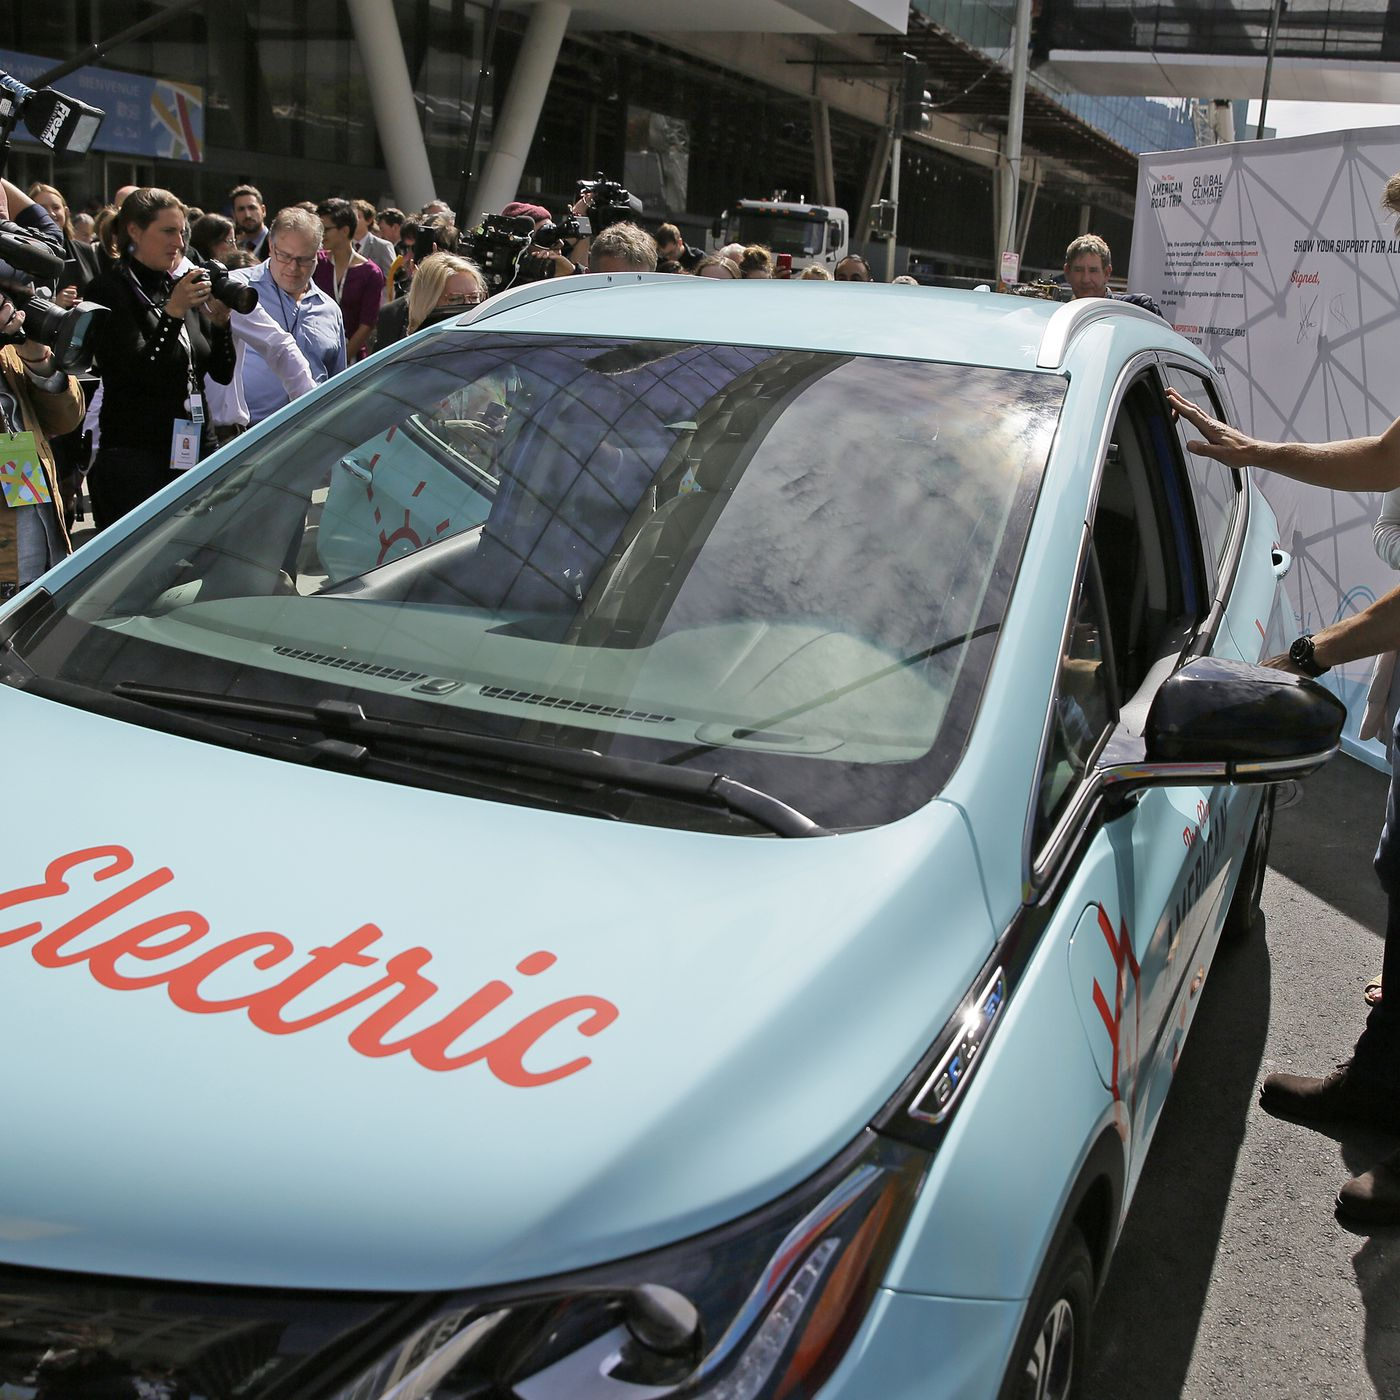 curbed.com - Alissa Walker - Cities, obsessed with electric cars, overlook simple solutions at climate summit